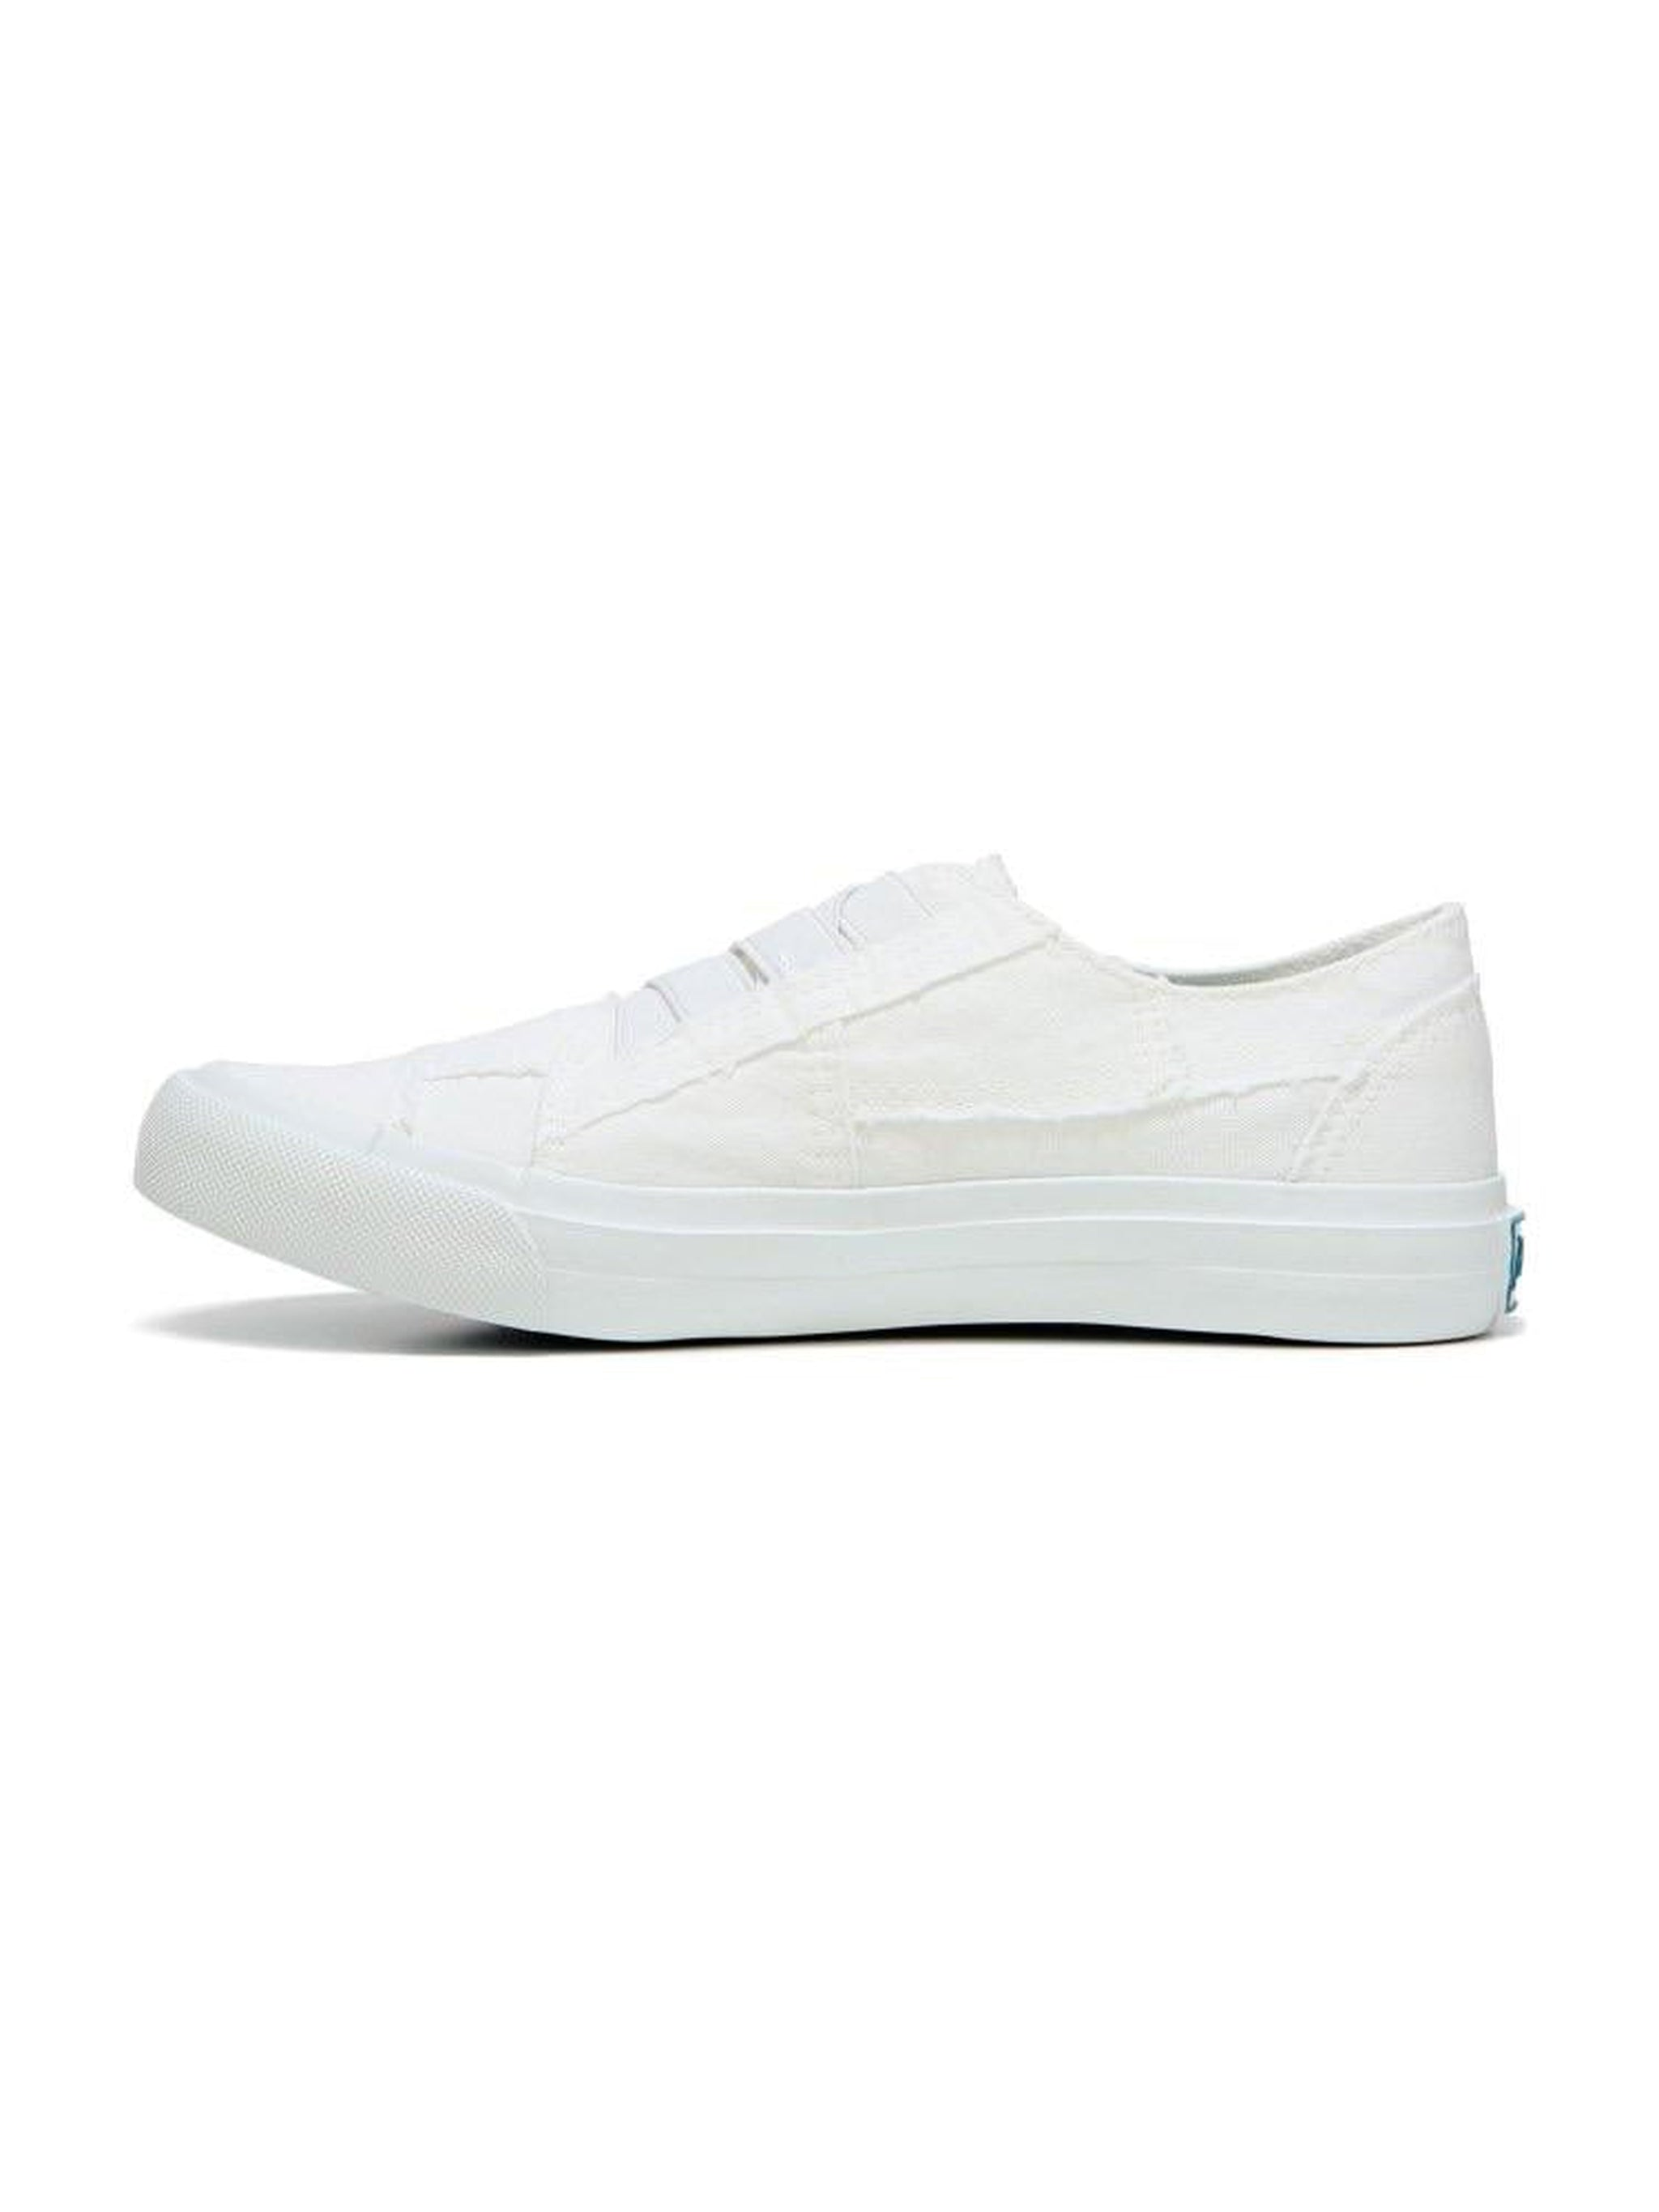 THE BLOWFISH MARLEY SNEAKERS - WHITE COLOR WASHED